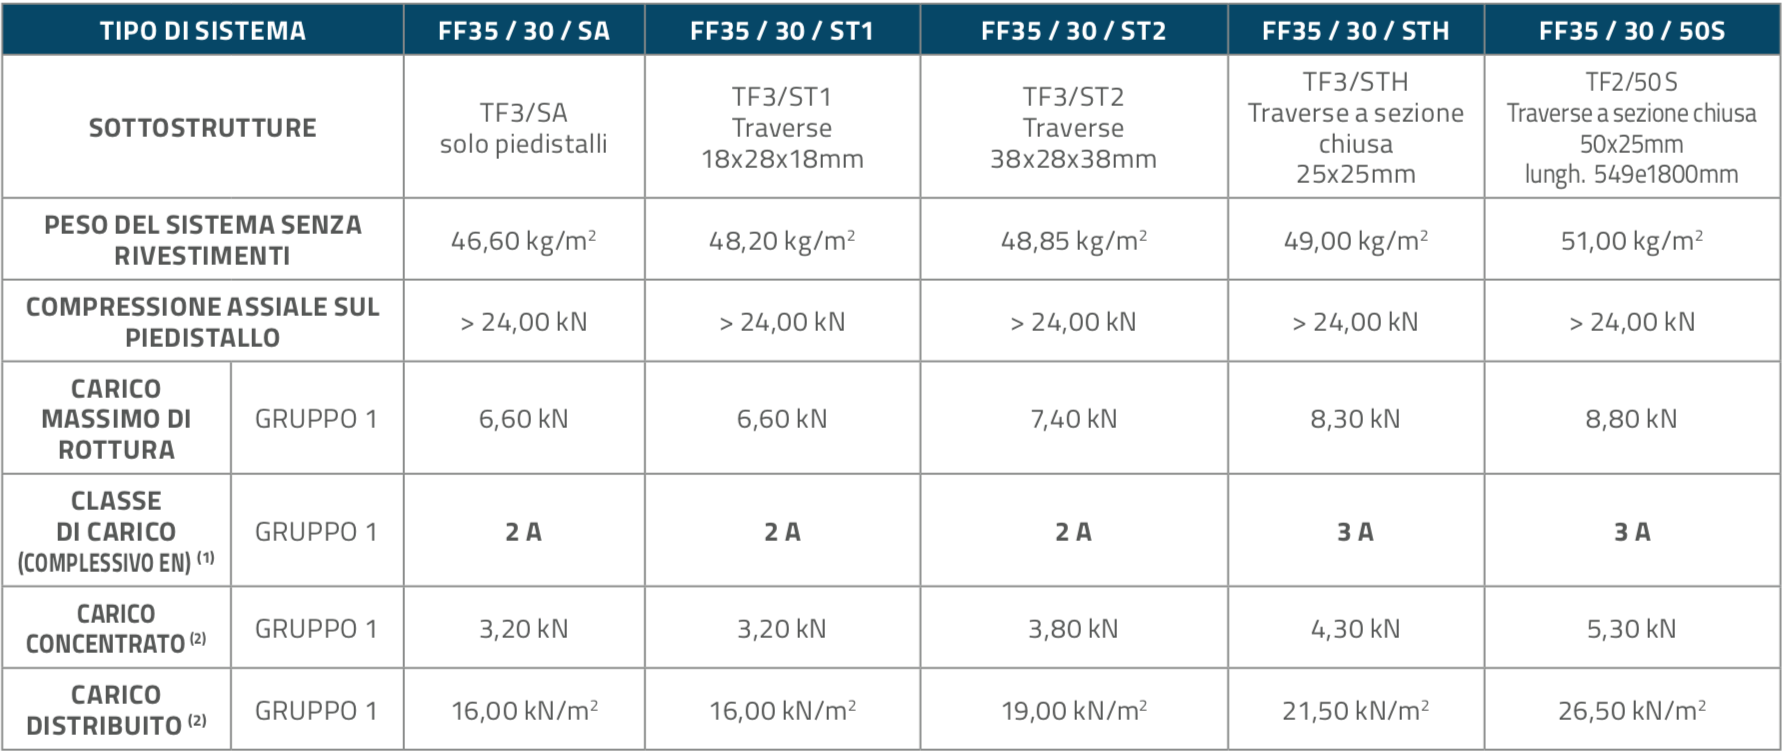 FF3530_Pannelli_Table2